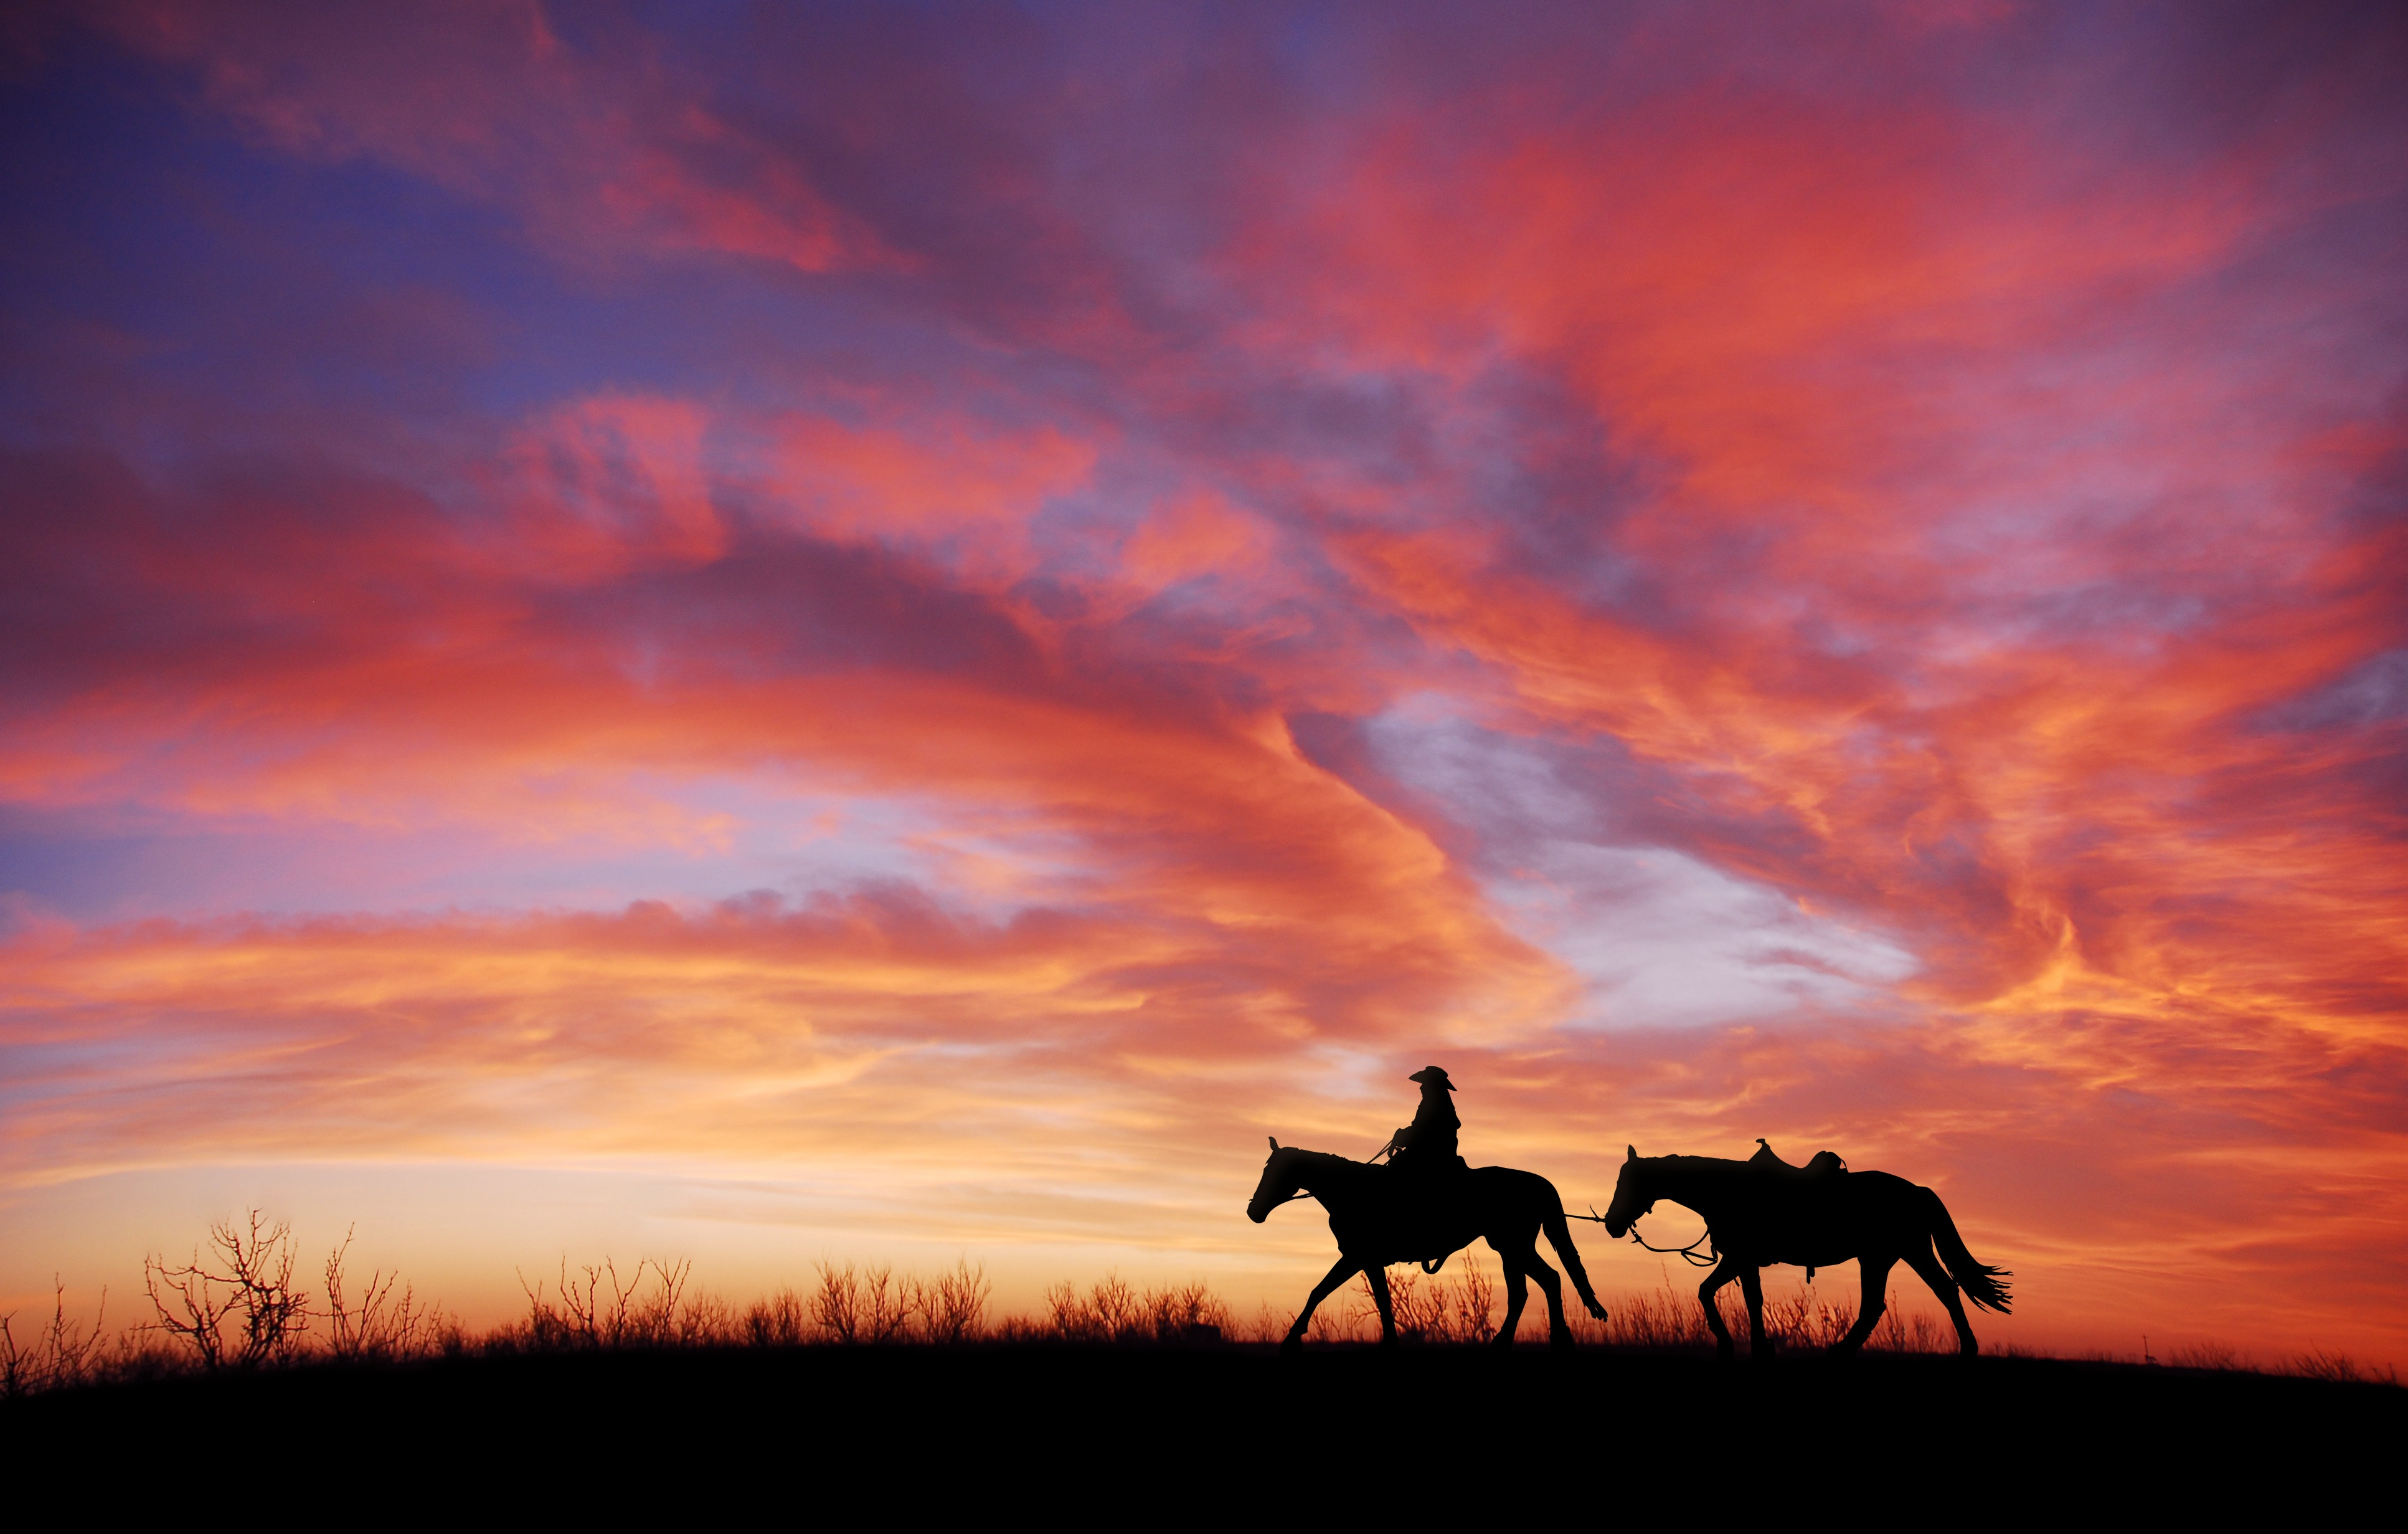 Cowboy 4k Wallpaper Horses Silhouette Dawn Sunset Photography 915